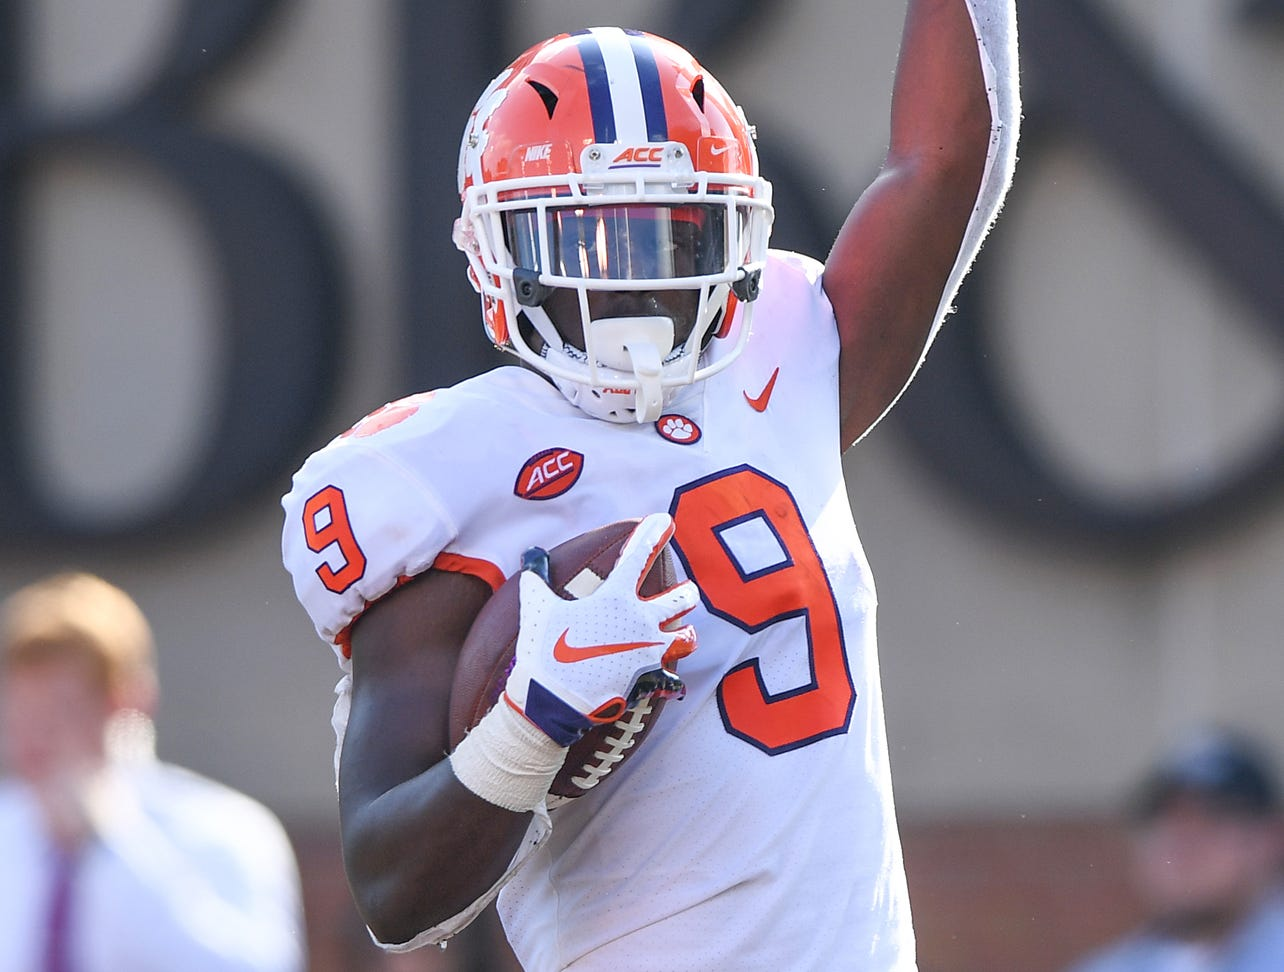 Clemson running back Travis Etienne (9) celebrates after scoring against Wake Forest during the 2nd quarter at BB&T Field in Winston Salem, N.C. Saturday, October 6, 2018.